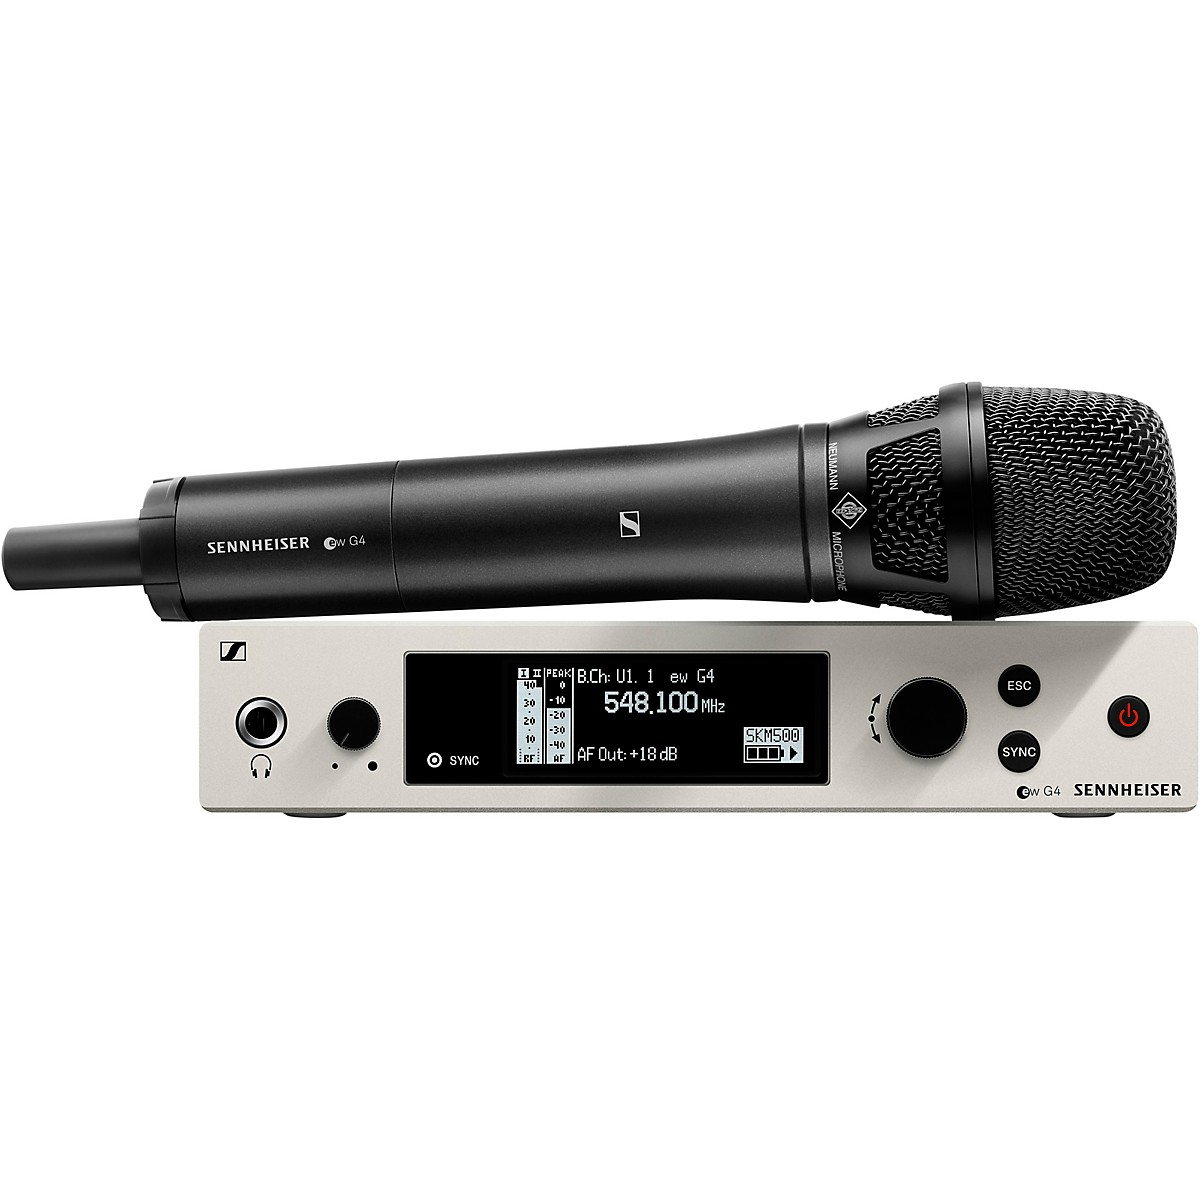 Sennheiser EW 500 G4 Handheld Wireless System with Neumann KK205 Capsule